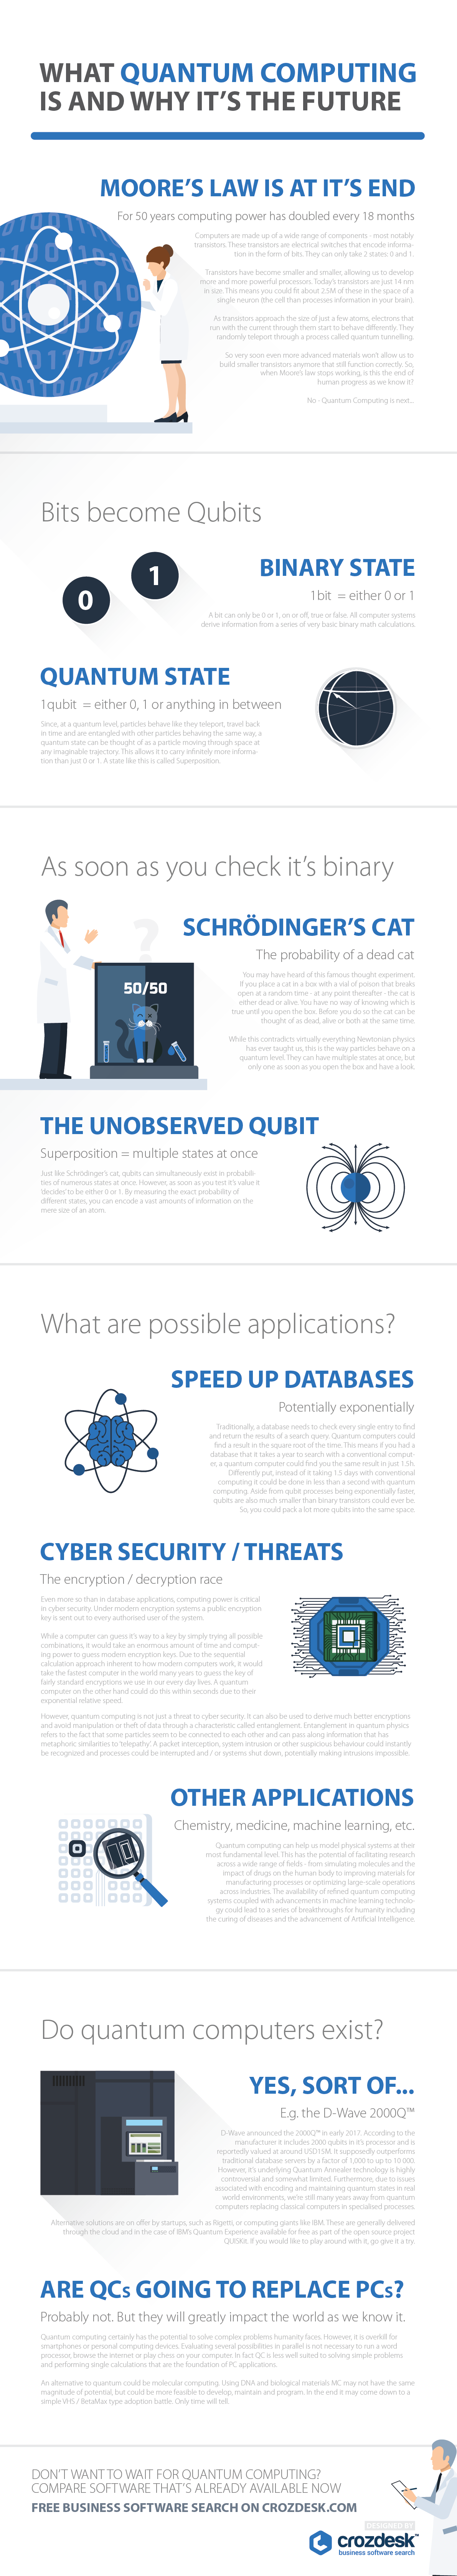 What Quantum Computing Is And Why It's The Future [INFOGRAPHIC]